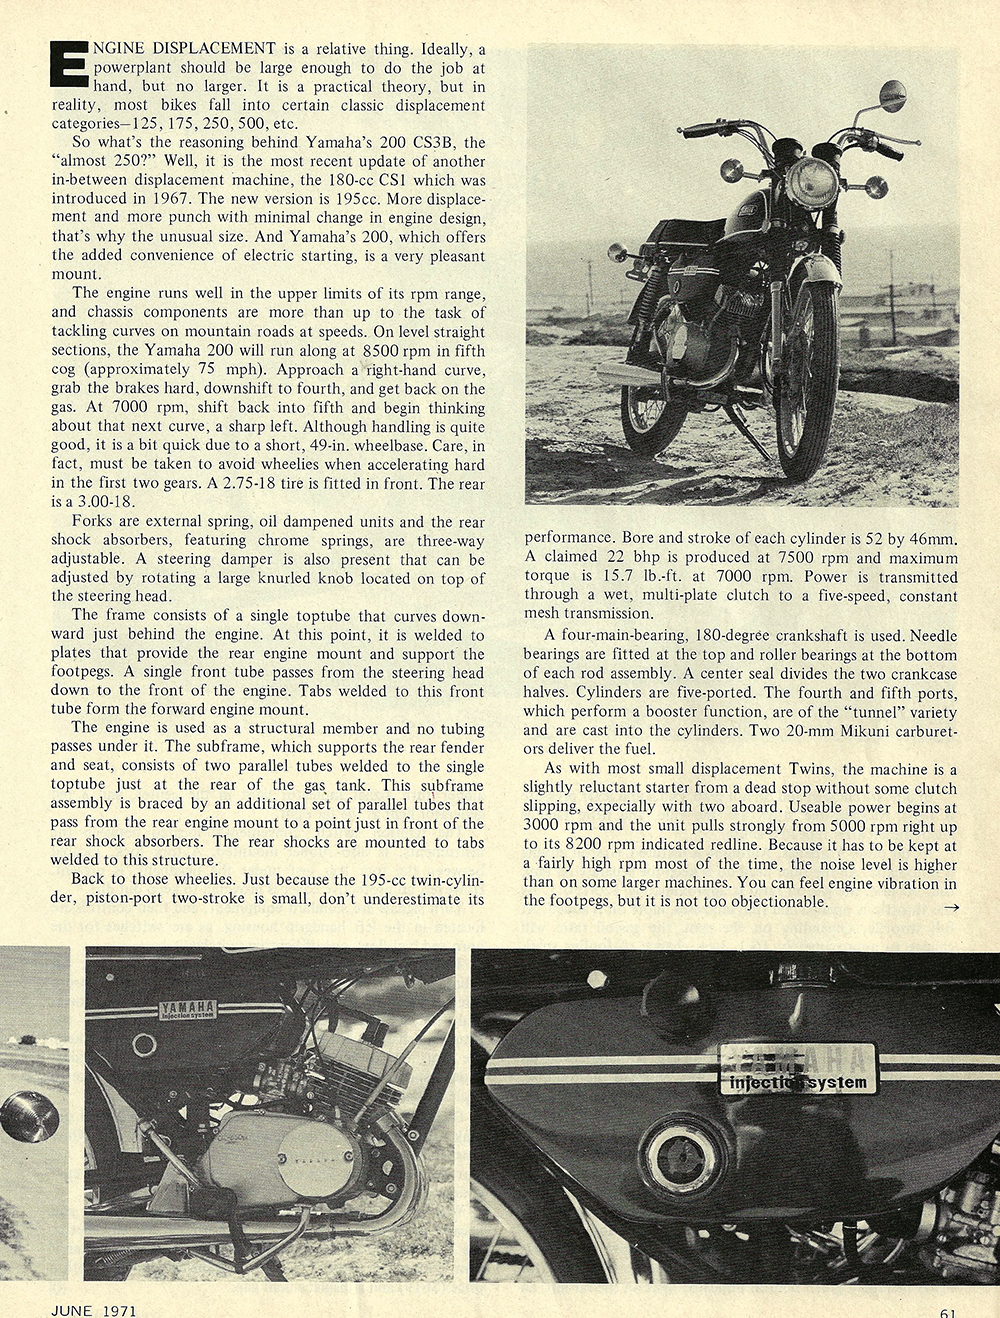 1971 Yamaha 200 CS3B road test 02.jpg